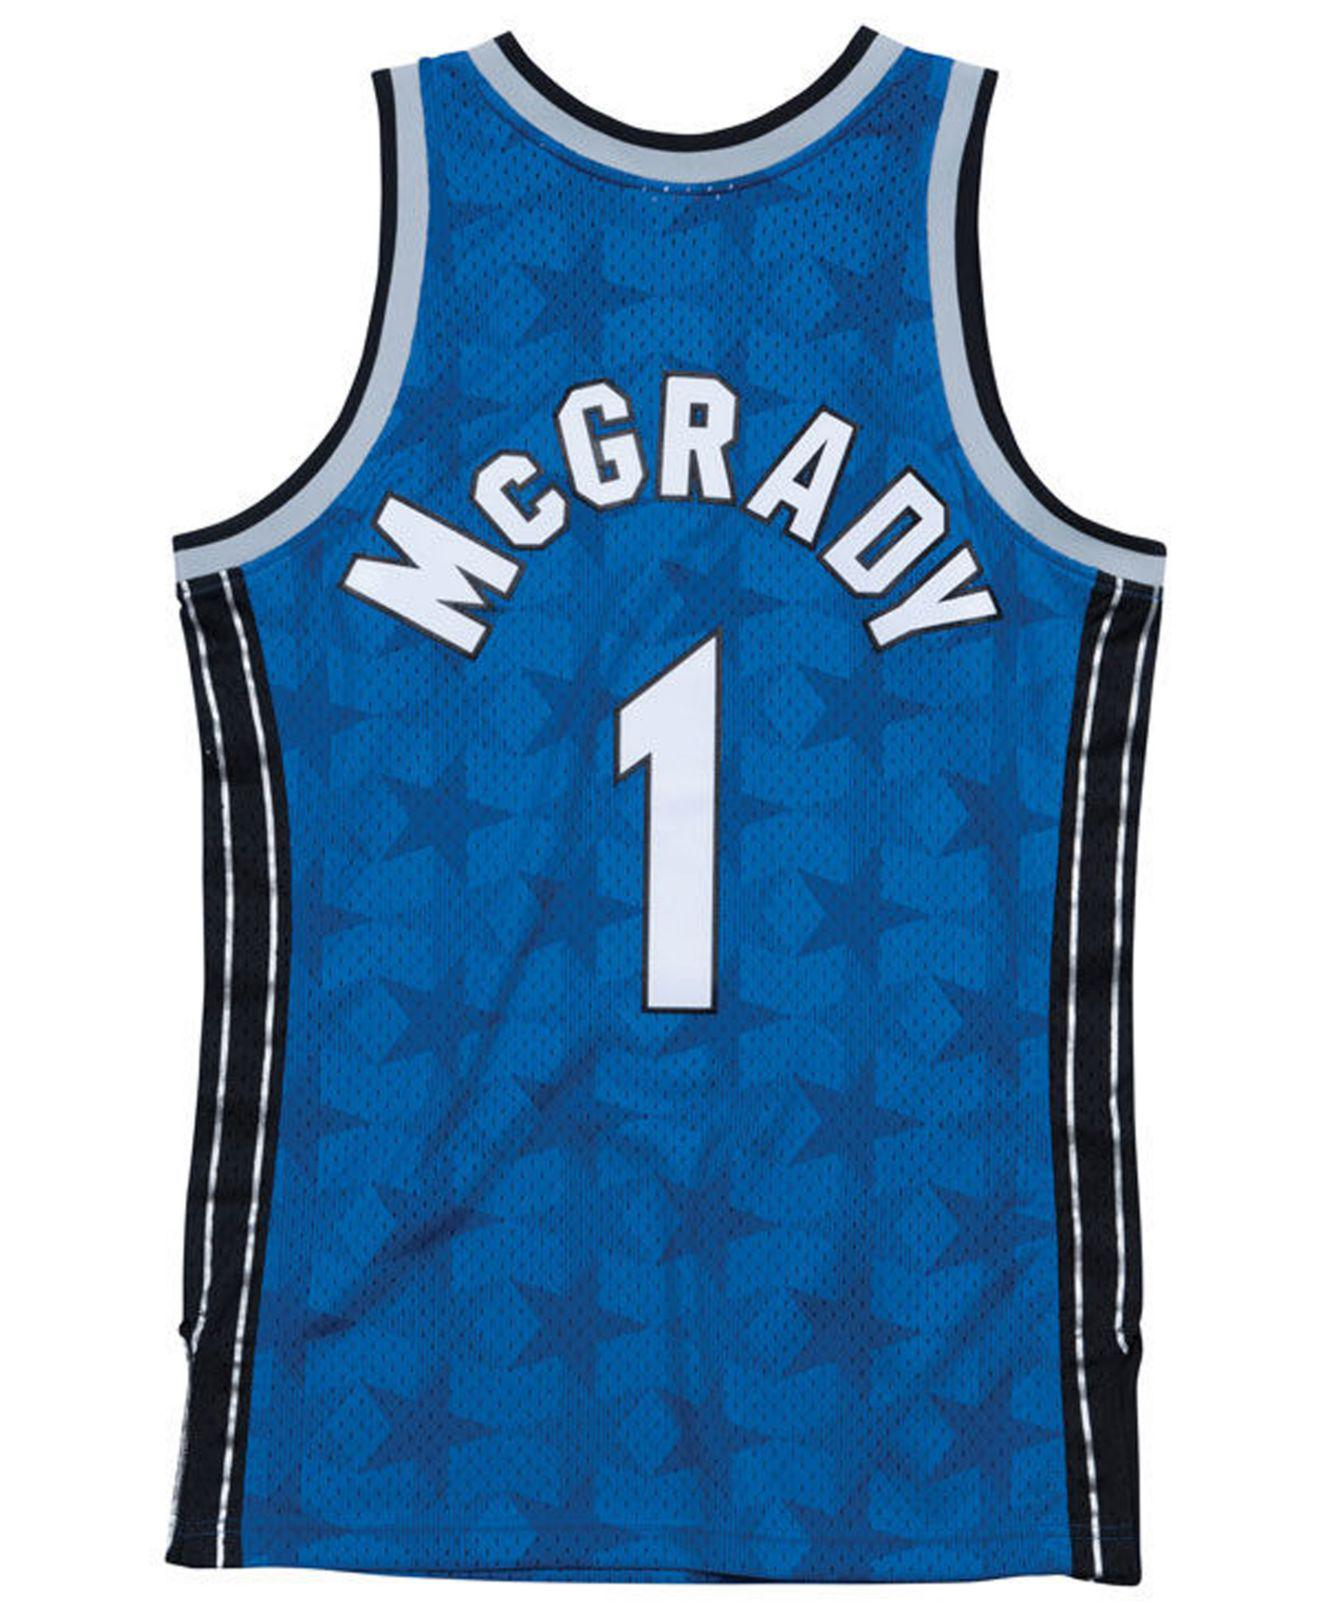 ee3a046a8c46 Mitchell   Ness Tracy Mcgrady Orlando Magic Hardwood Classic Swingman  Jersey in Blue for Men - Lyst